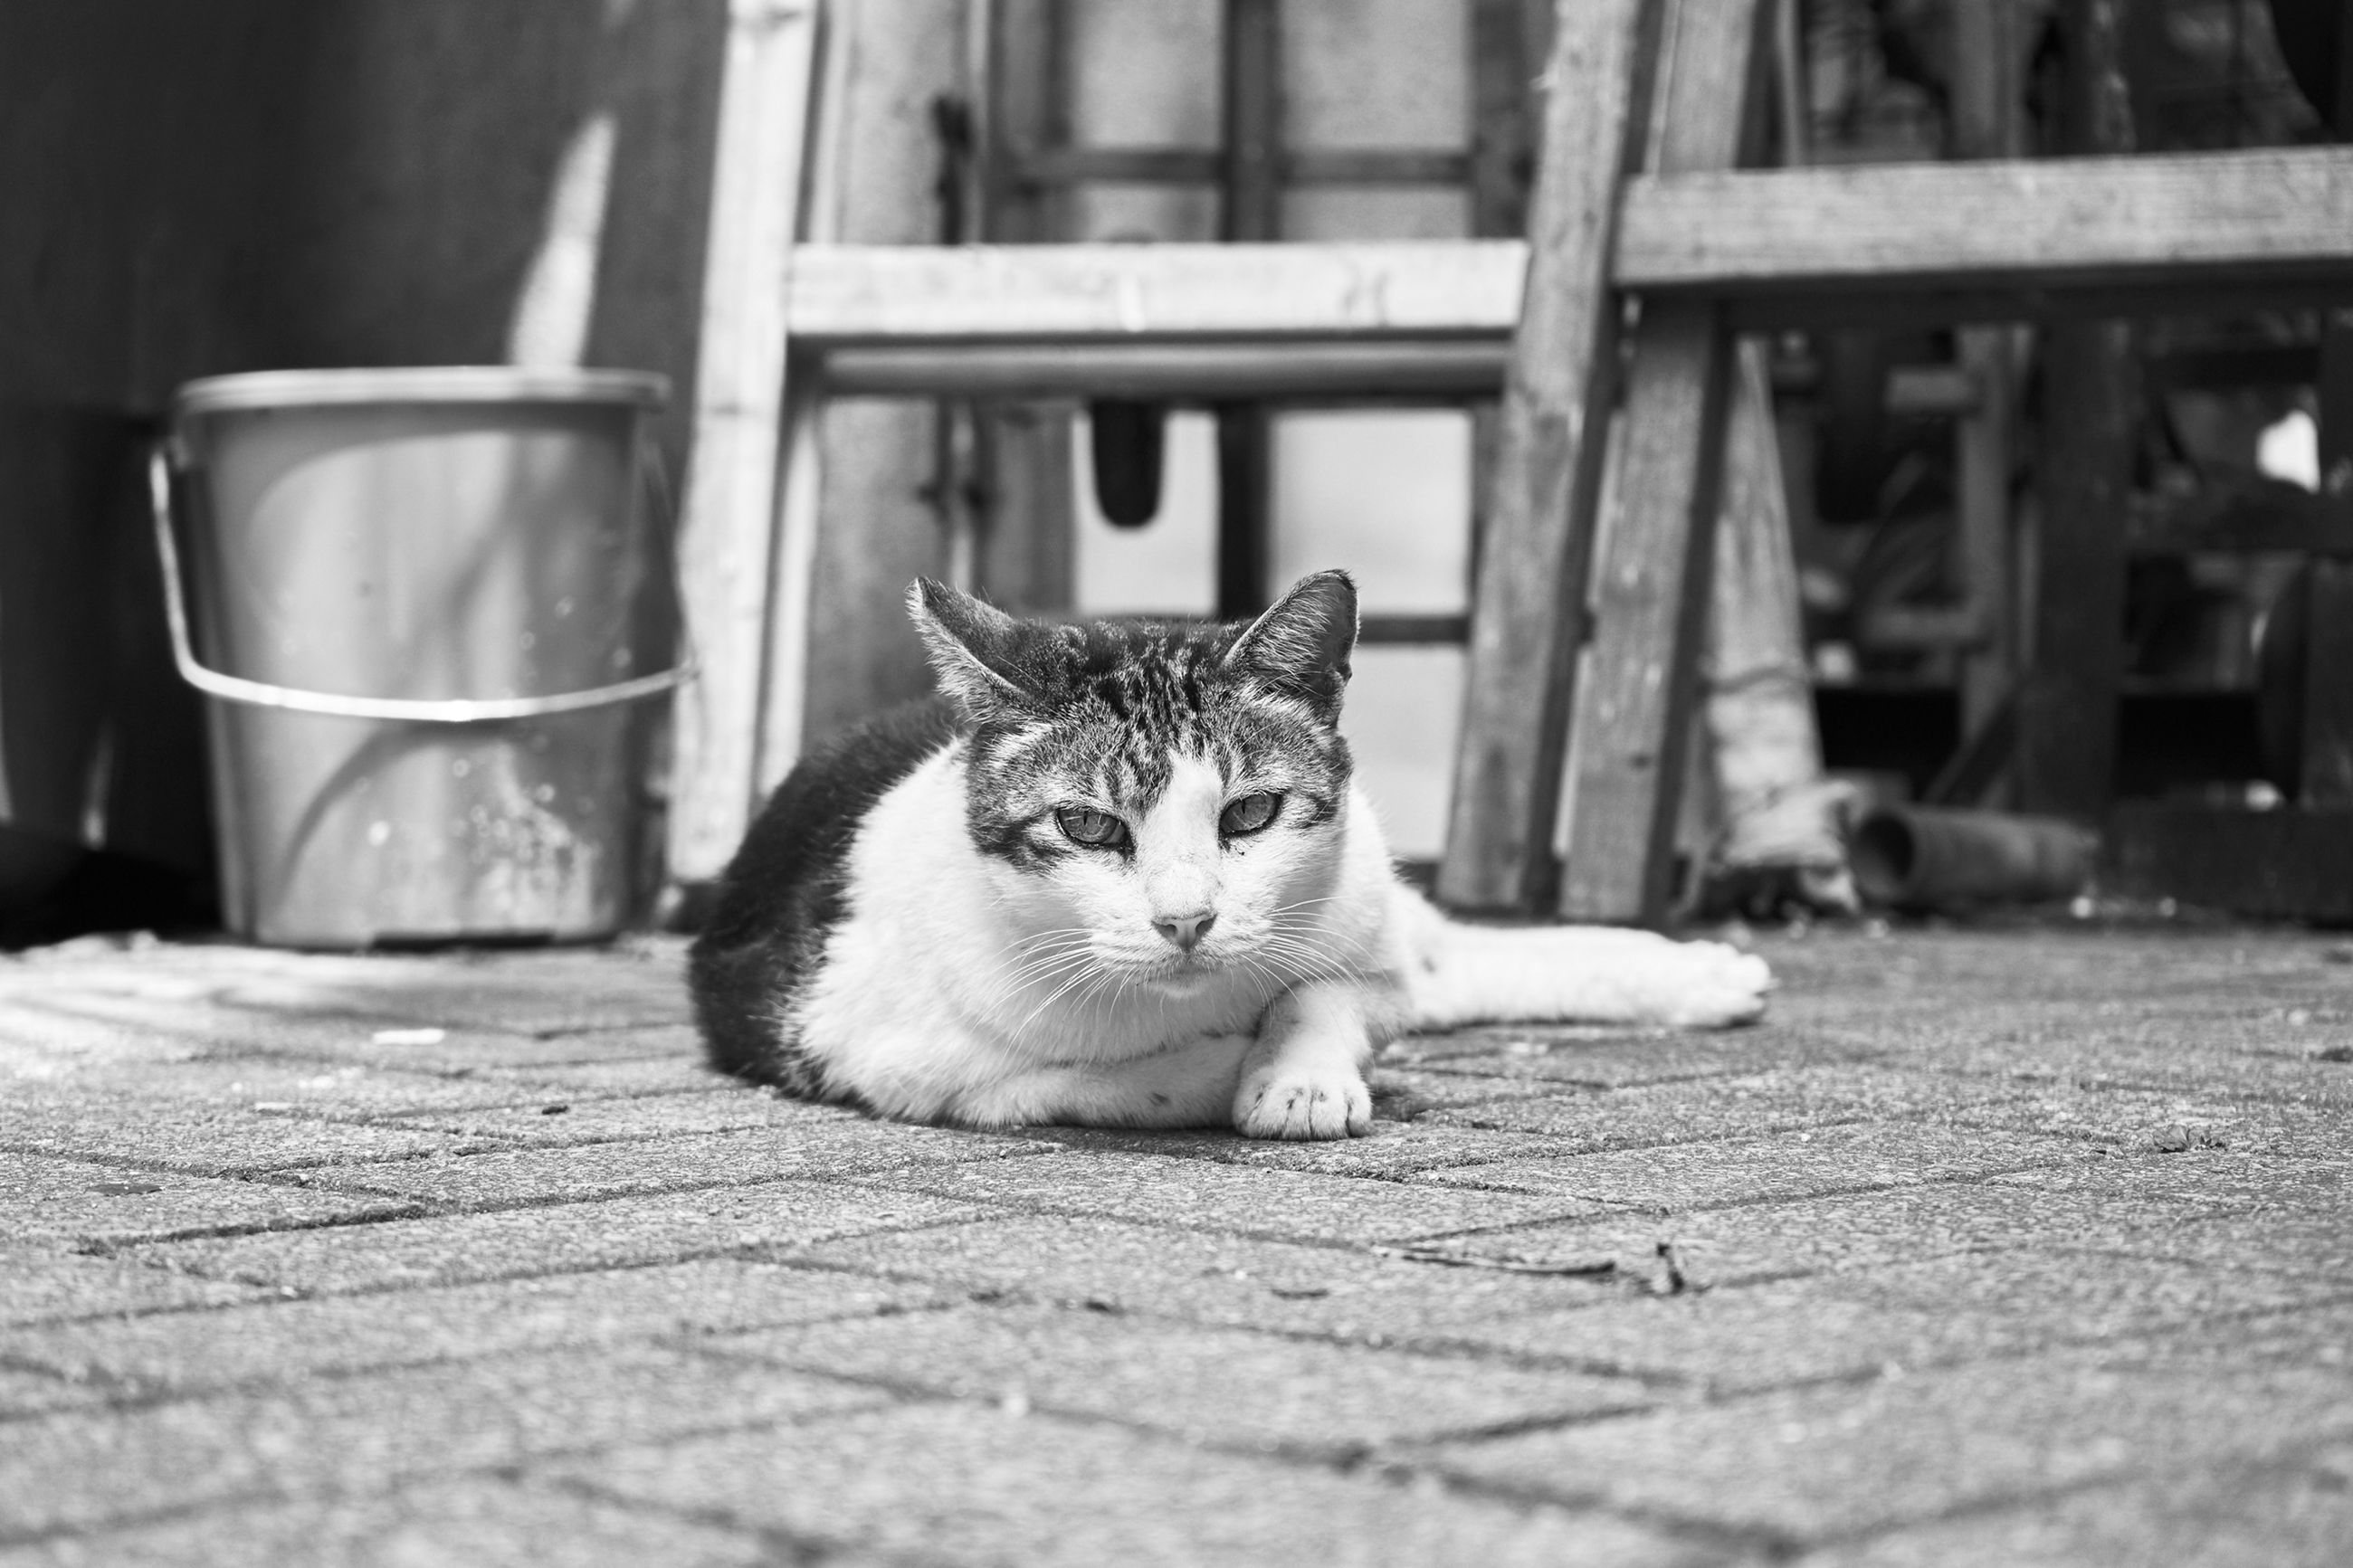 domestic animals, pets, animal themes, mammal, domestic cat, one animal, cat, feline, relaxation, portrait, looking at camera, whisker, selective focus, focus on foreground, lying down, relaxing, sitting, resting, two animals, day